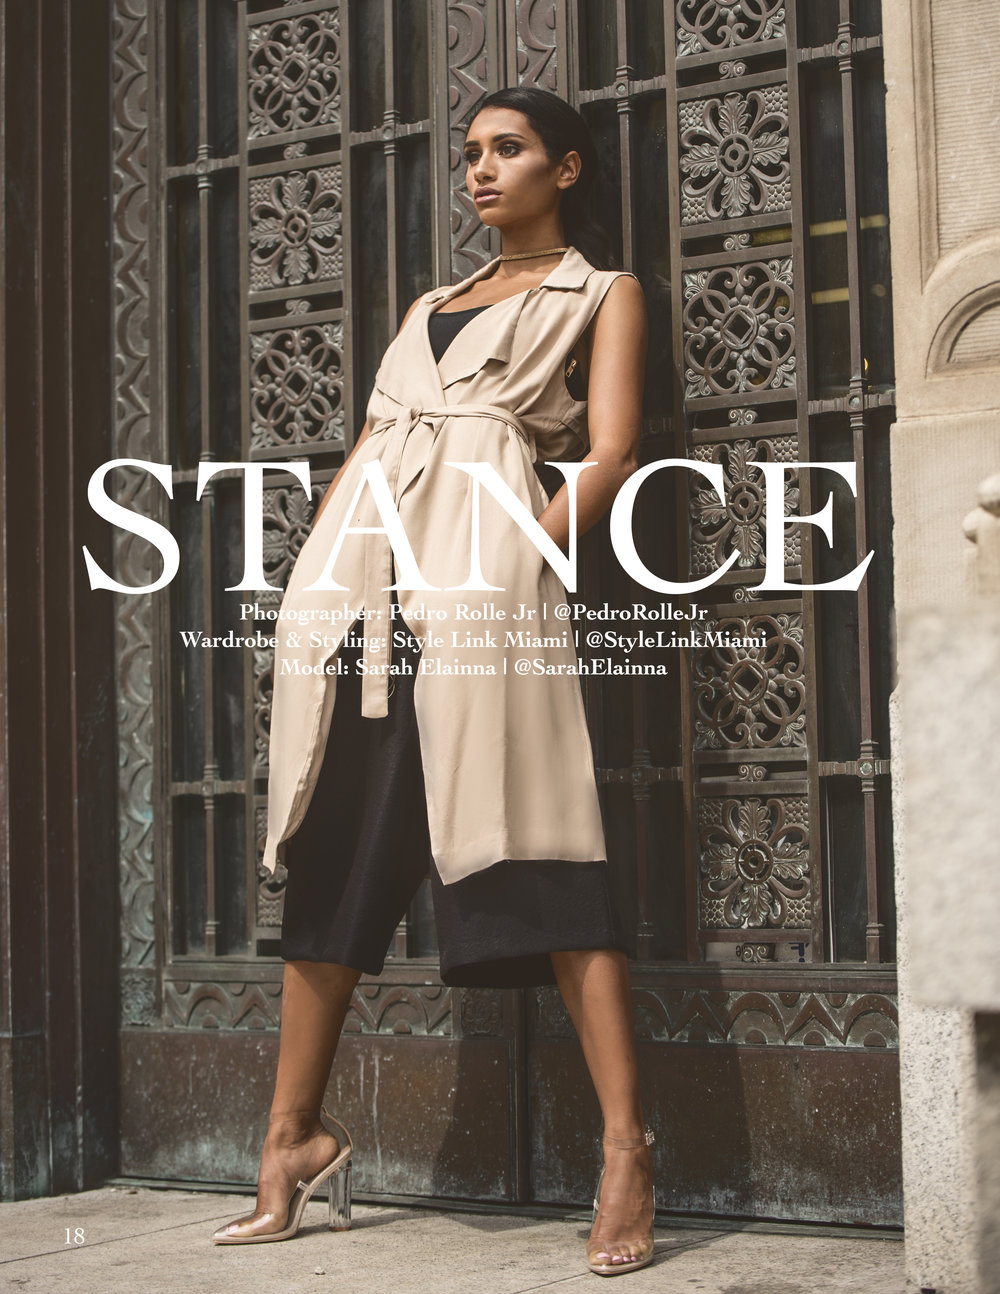 editorial-styling-northside-magazine-style-link-miami-illy-perez-pedro-rolle-jr